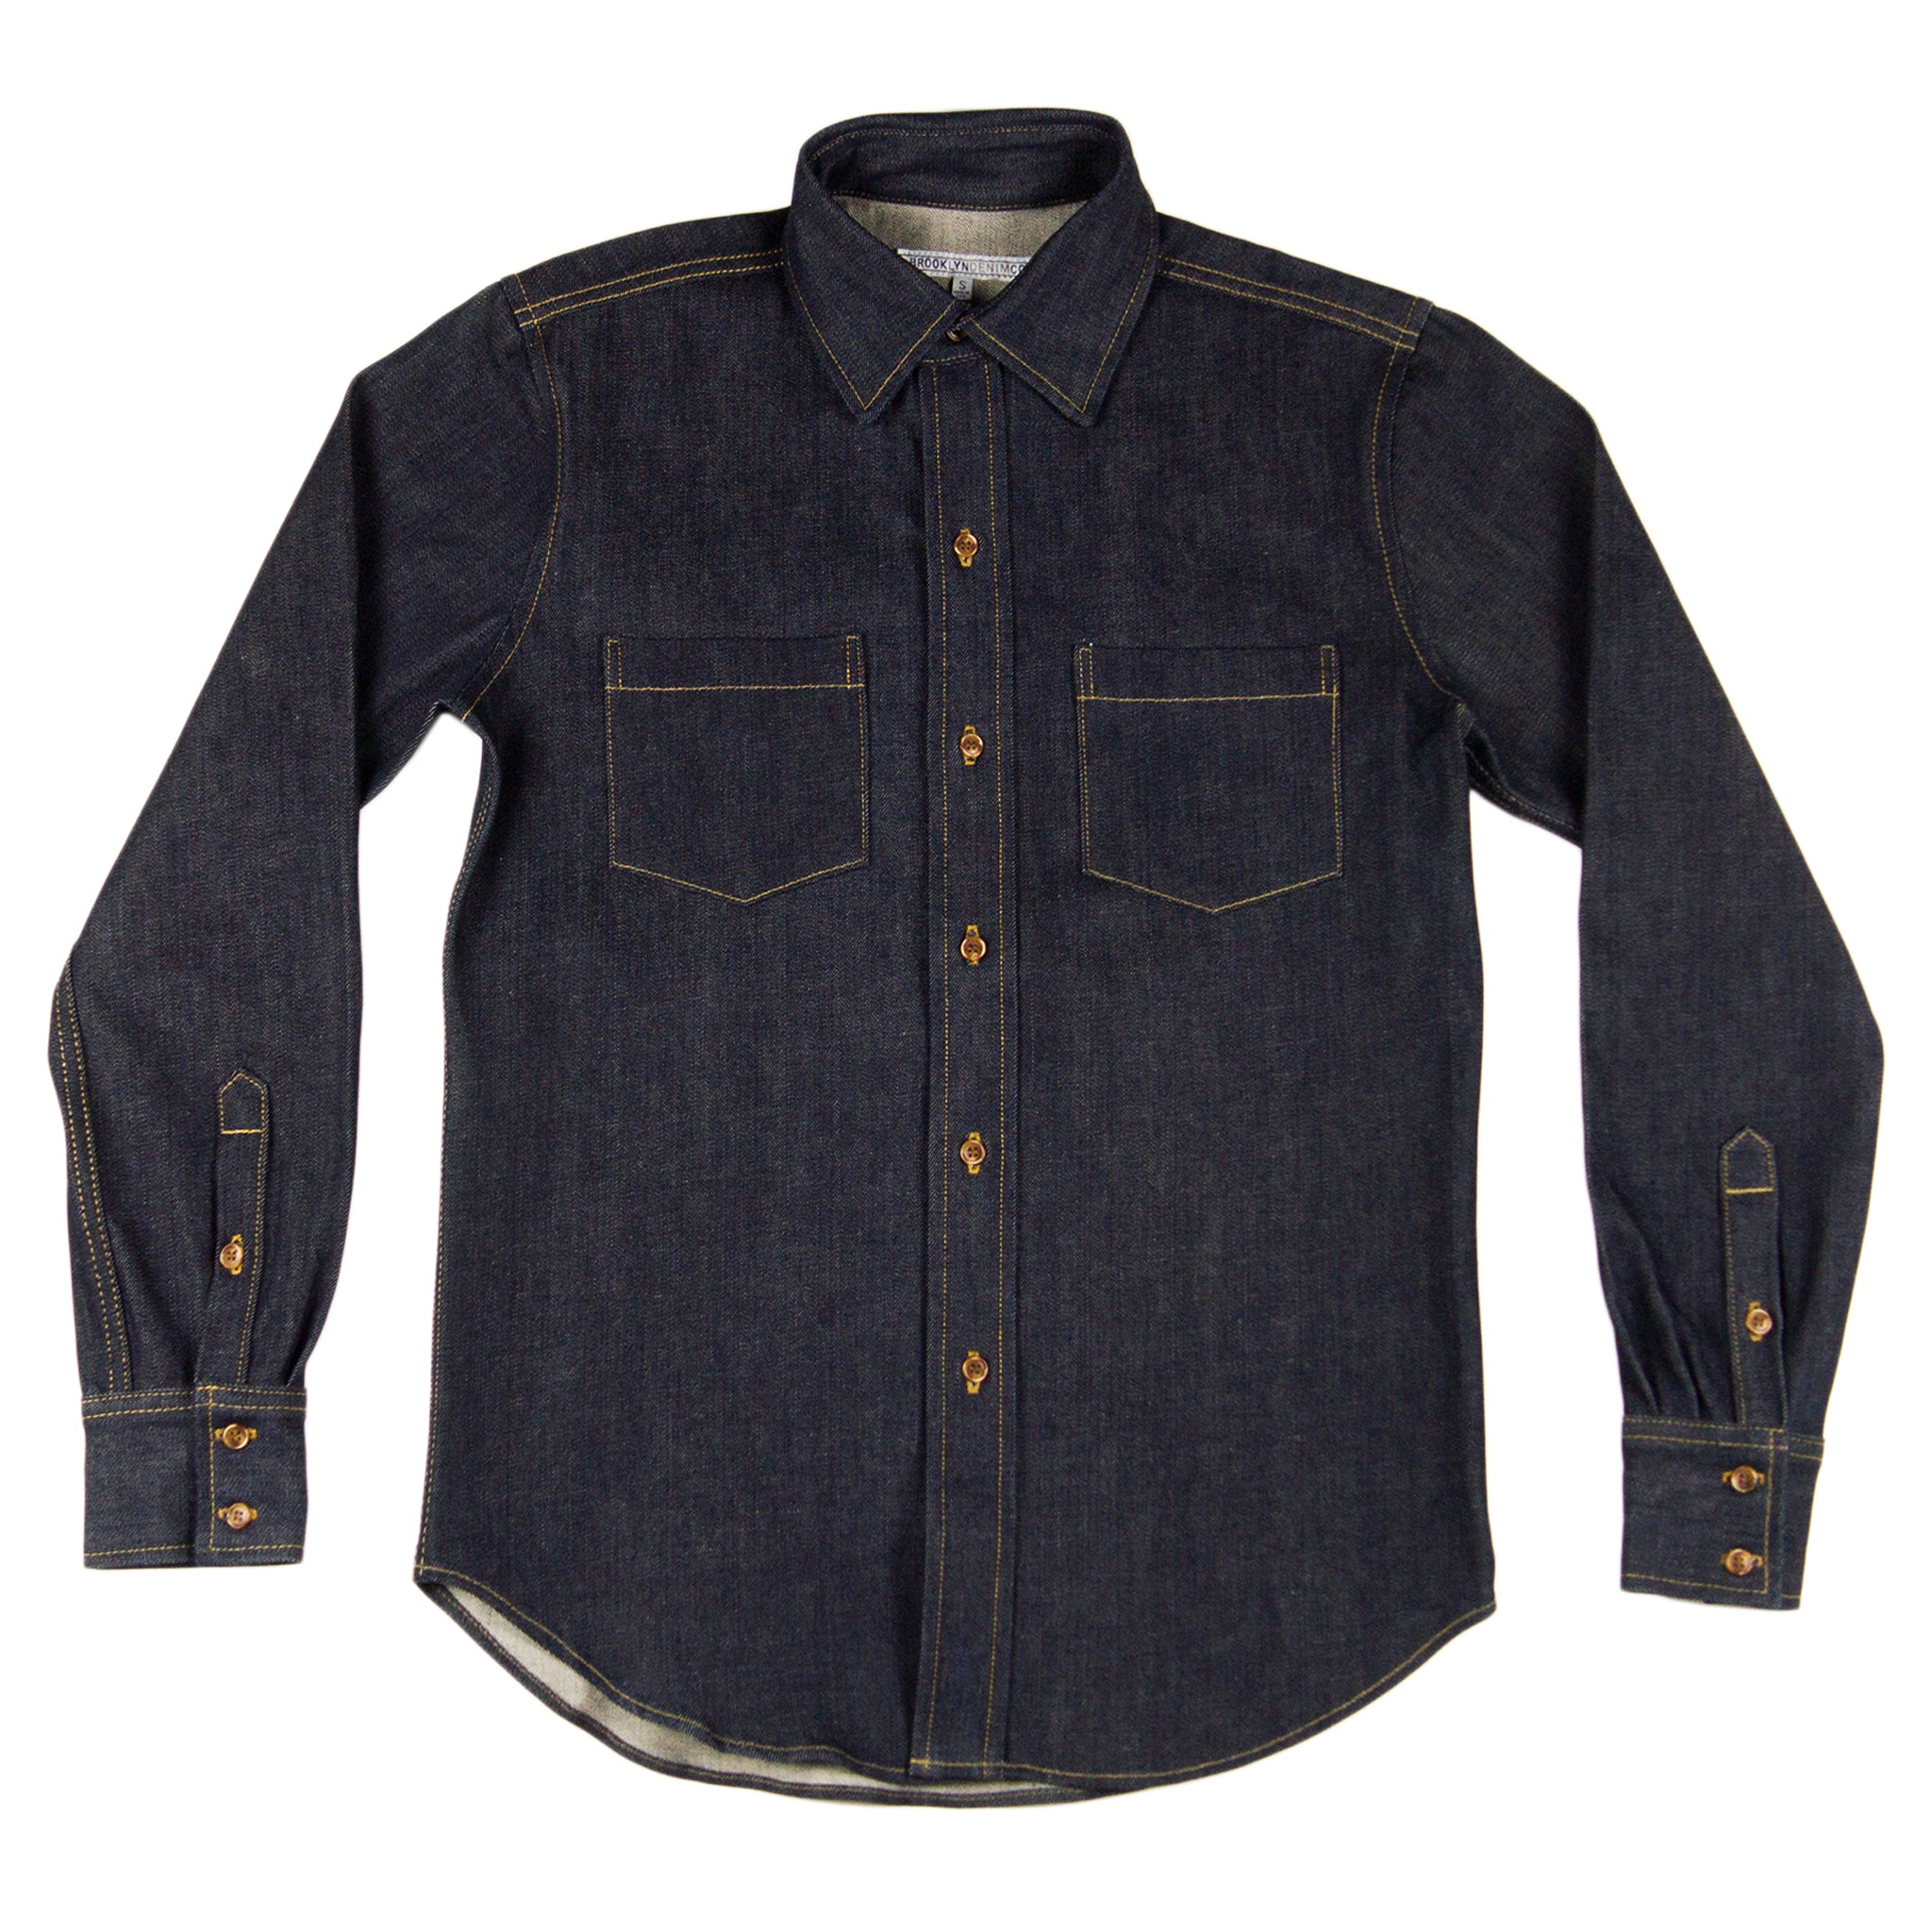 f7beacf985f Brooklyn Denim Co. Denim Shirt Rigid USA Made